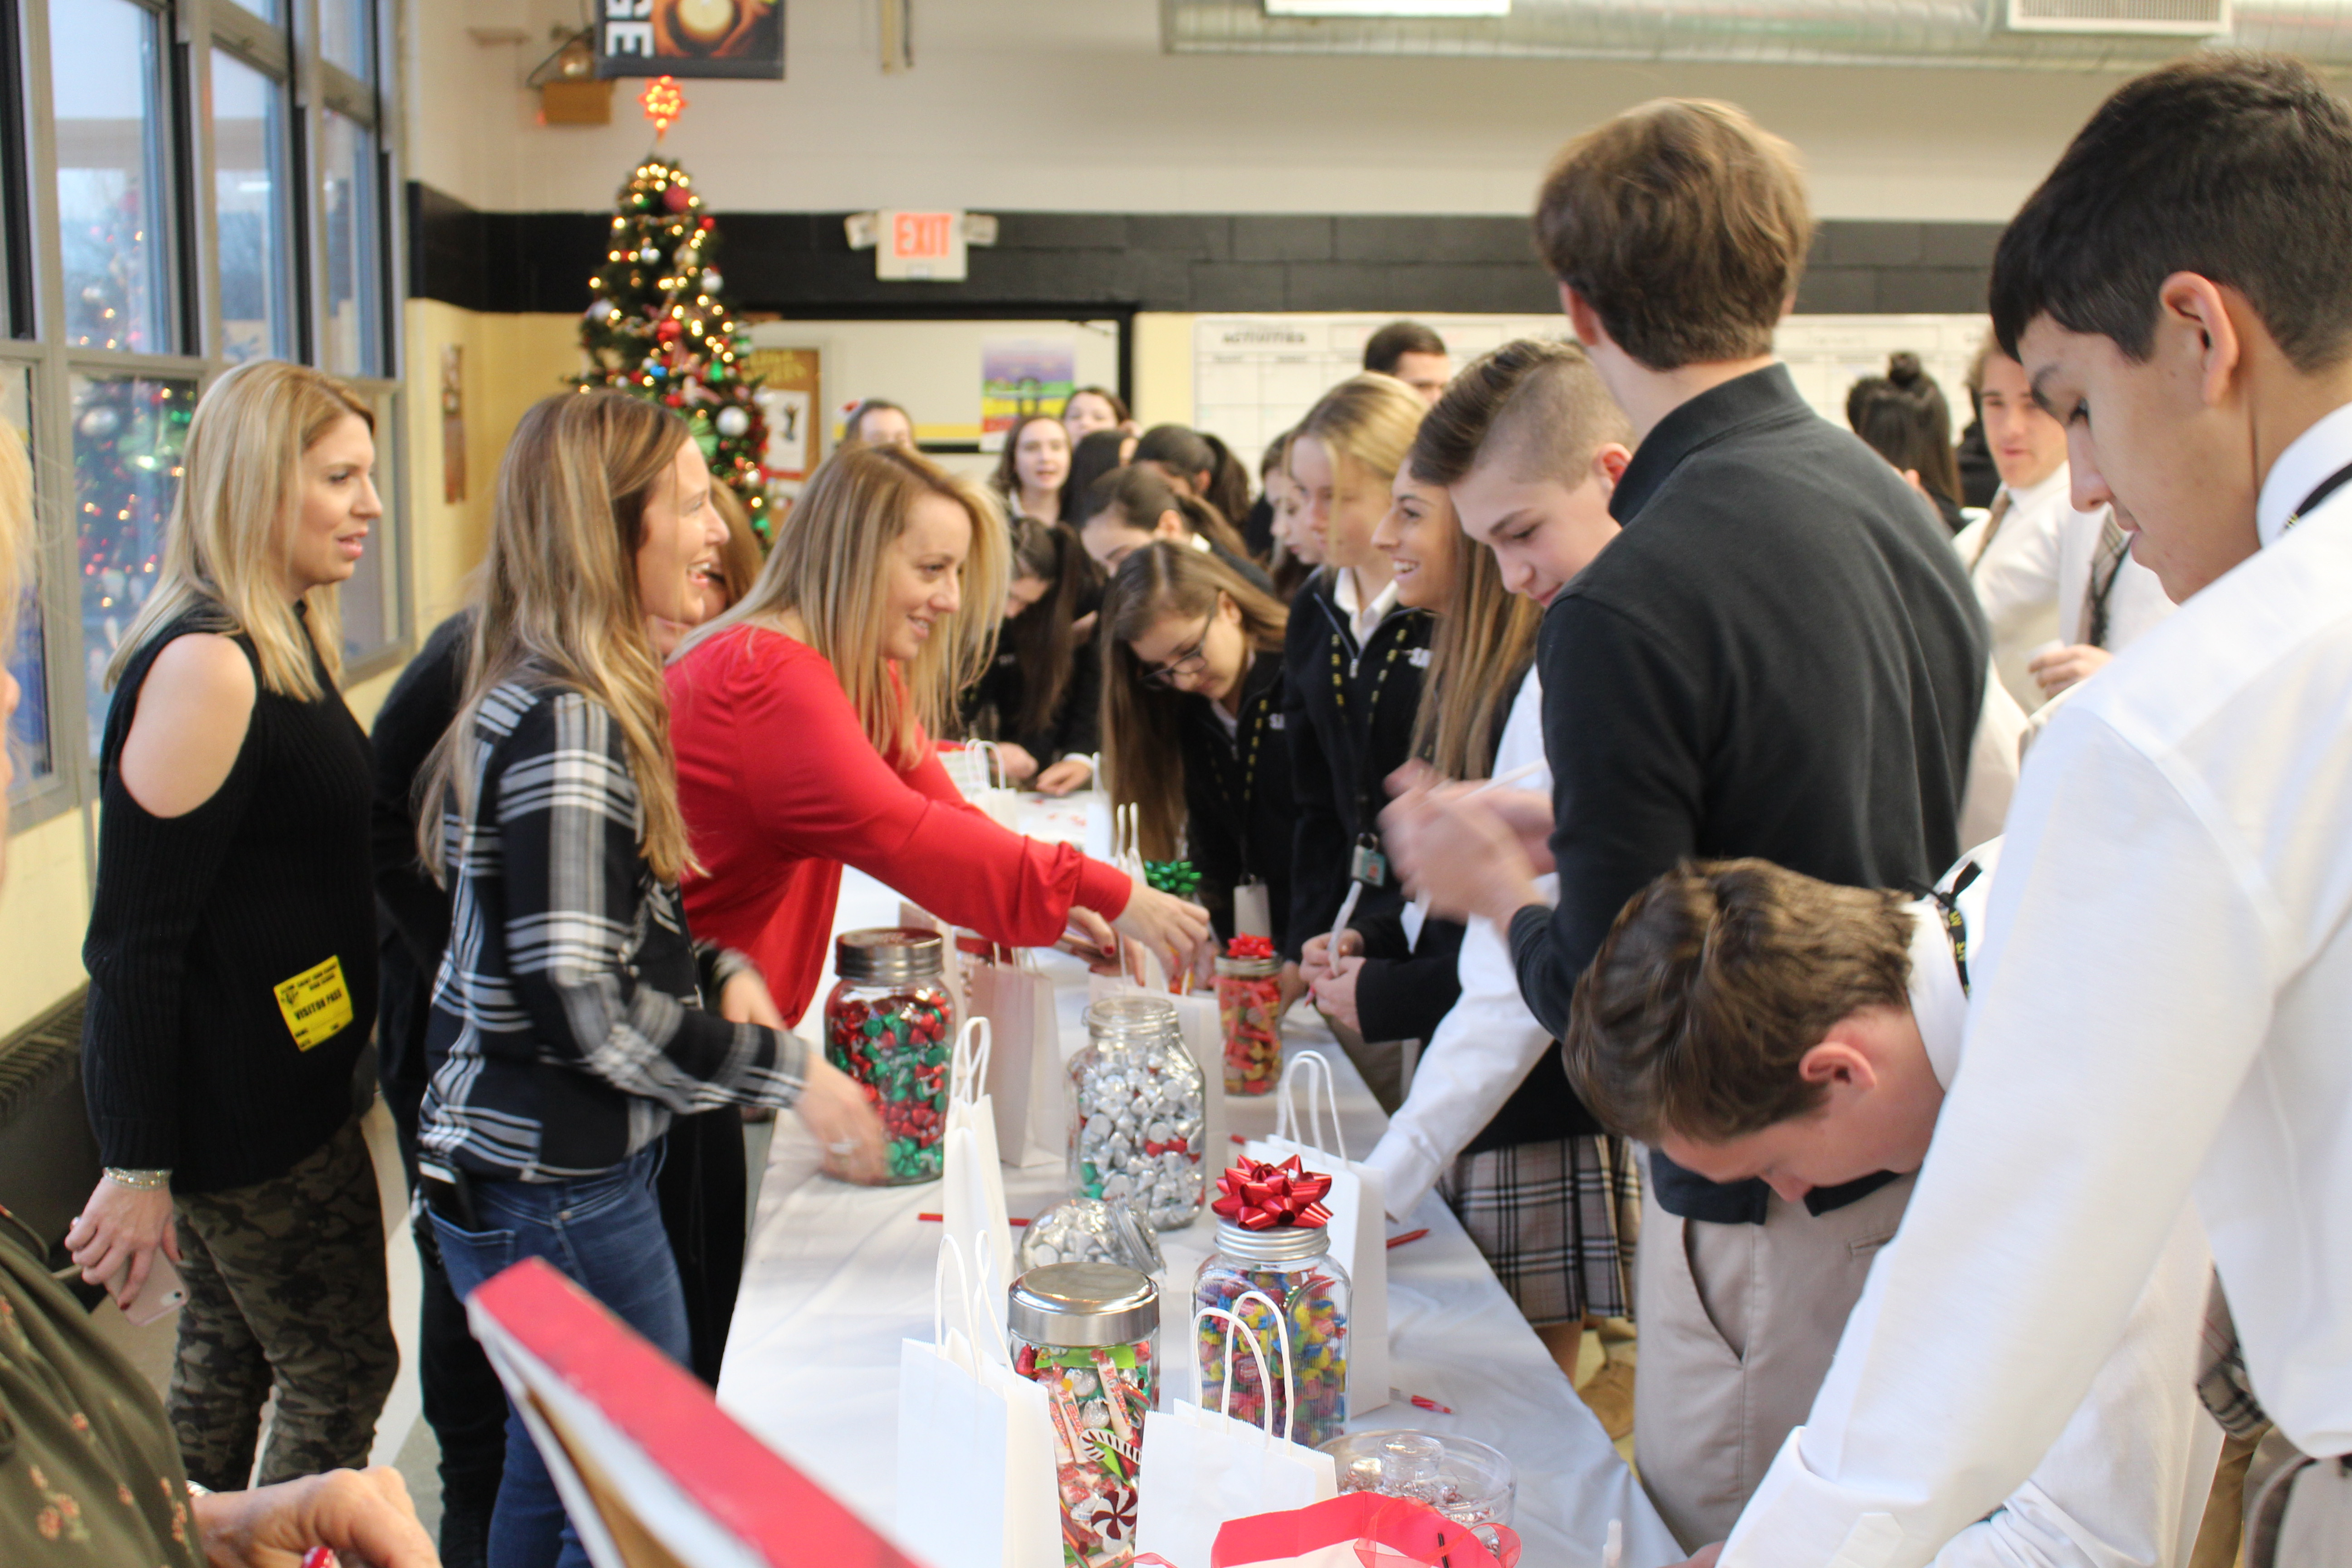 PTA Members Passing Out Treats at Christmas Event